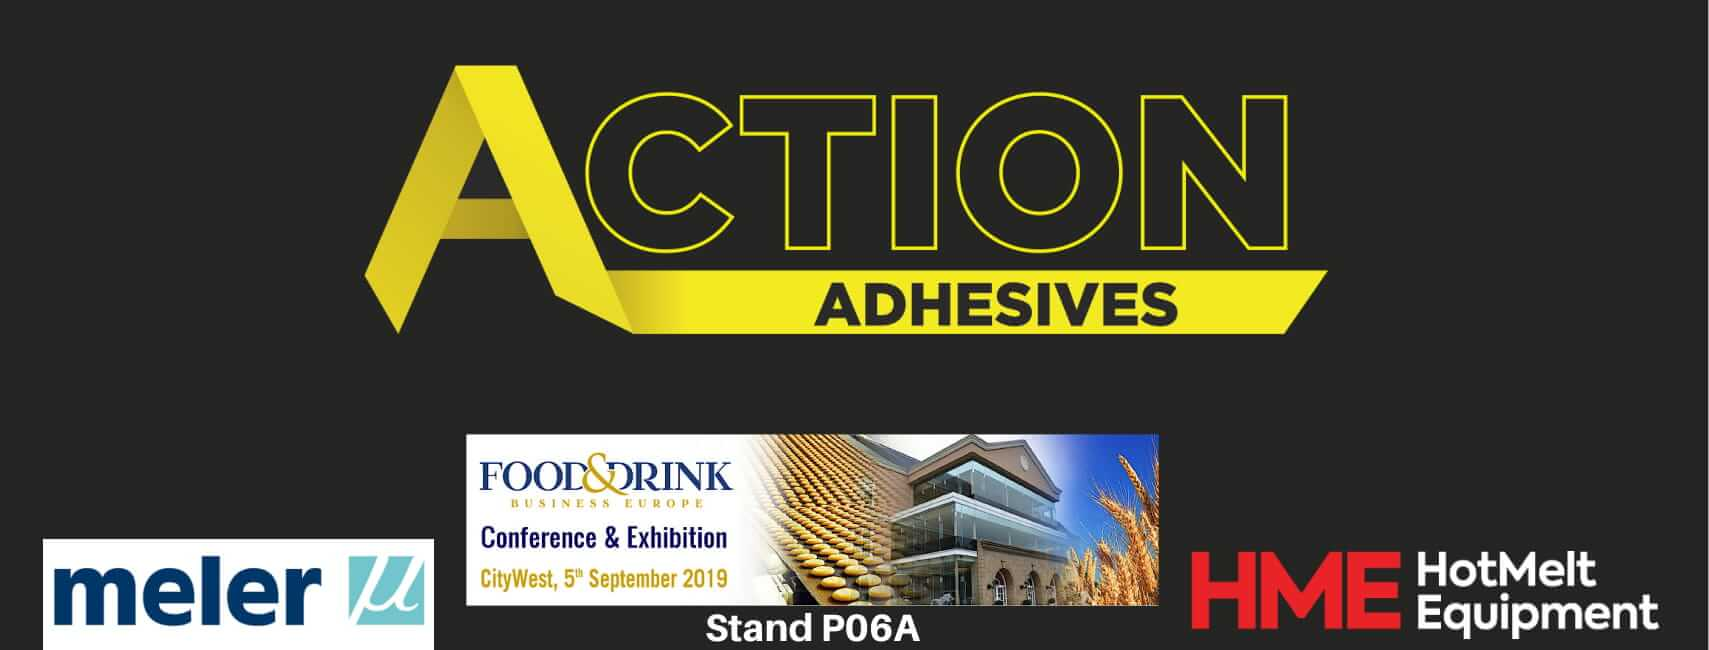 Action Adhesives at the Food & Drink Expo